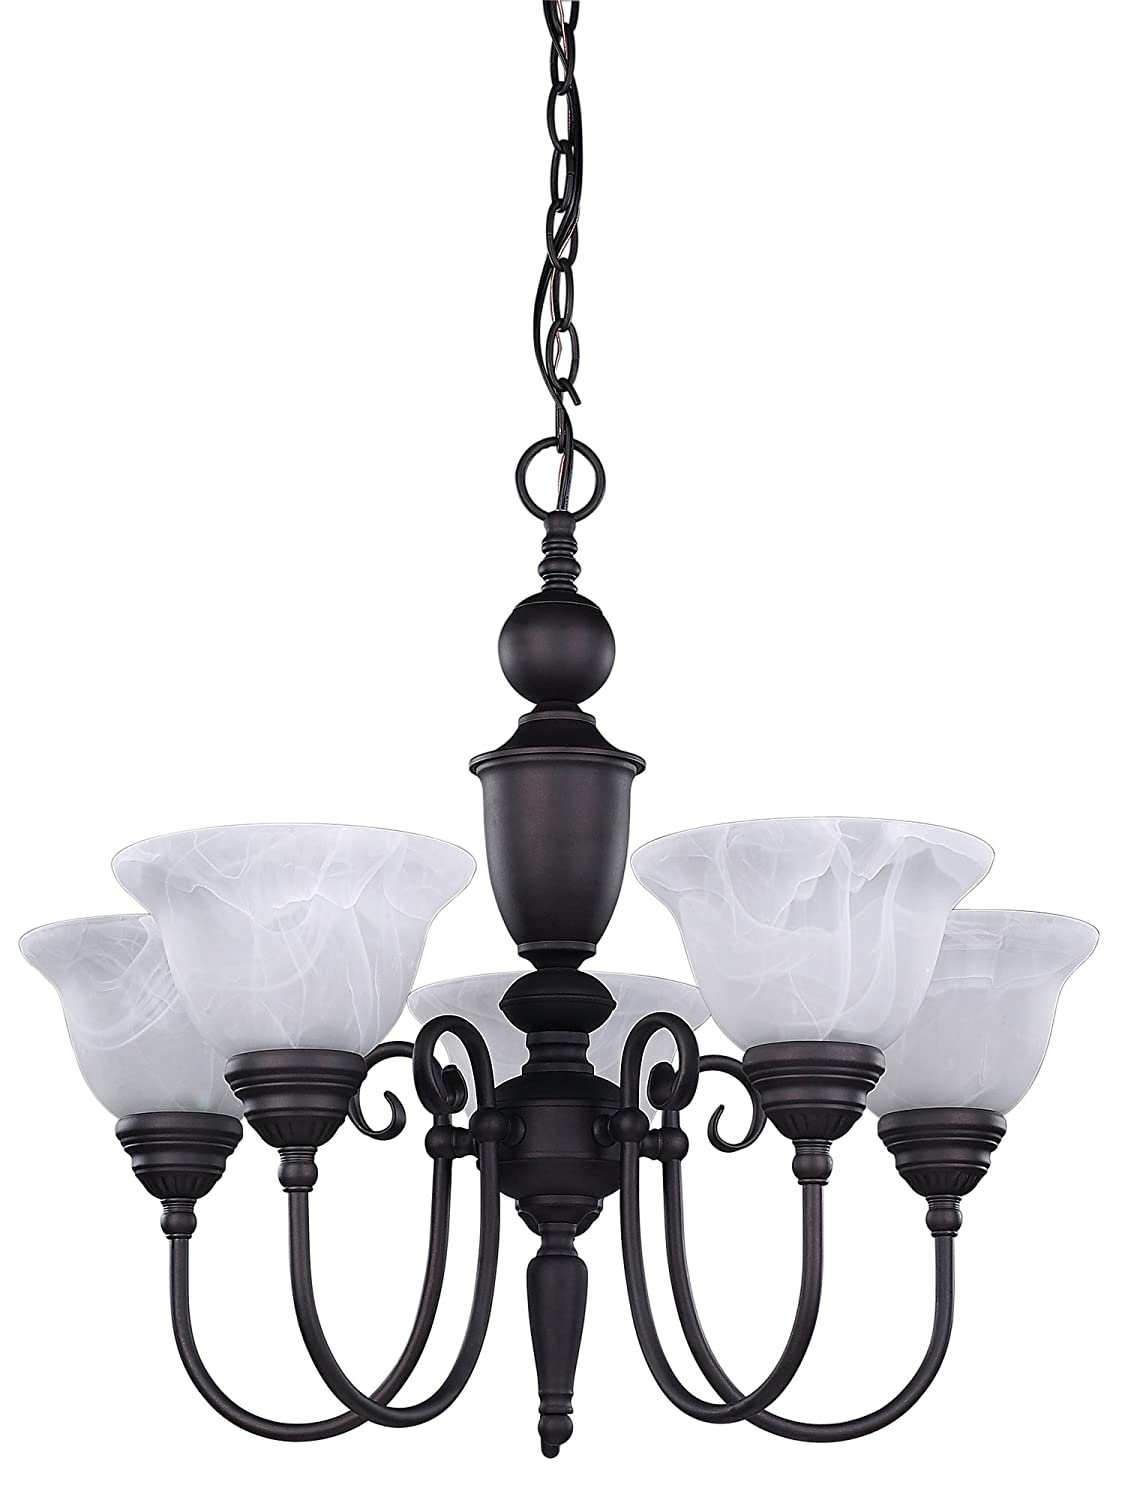 Canarm ICH20A03ORB Julianna 3-Light Chandelier, 20.5 x 20.5 x 19.75 , Oil Rubbed Bronze